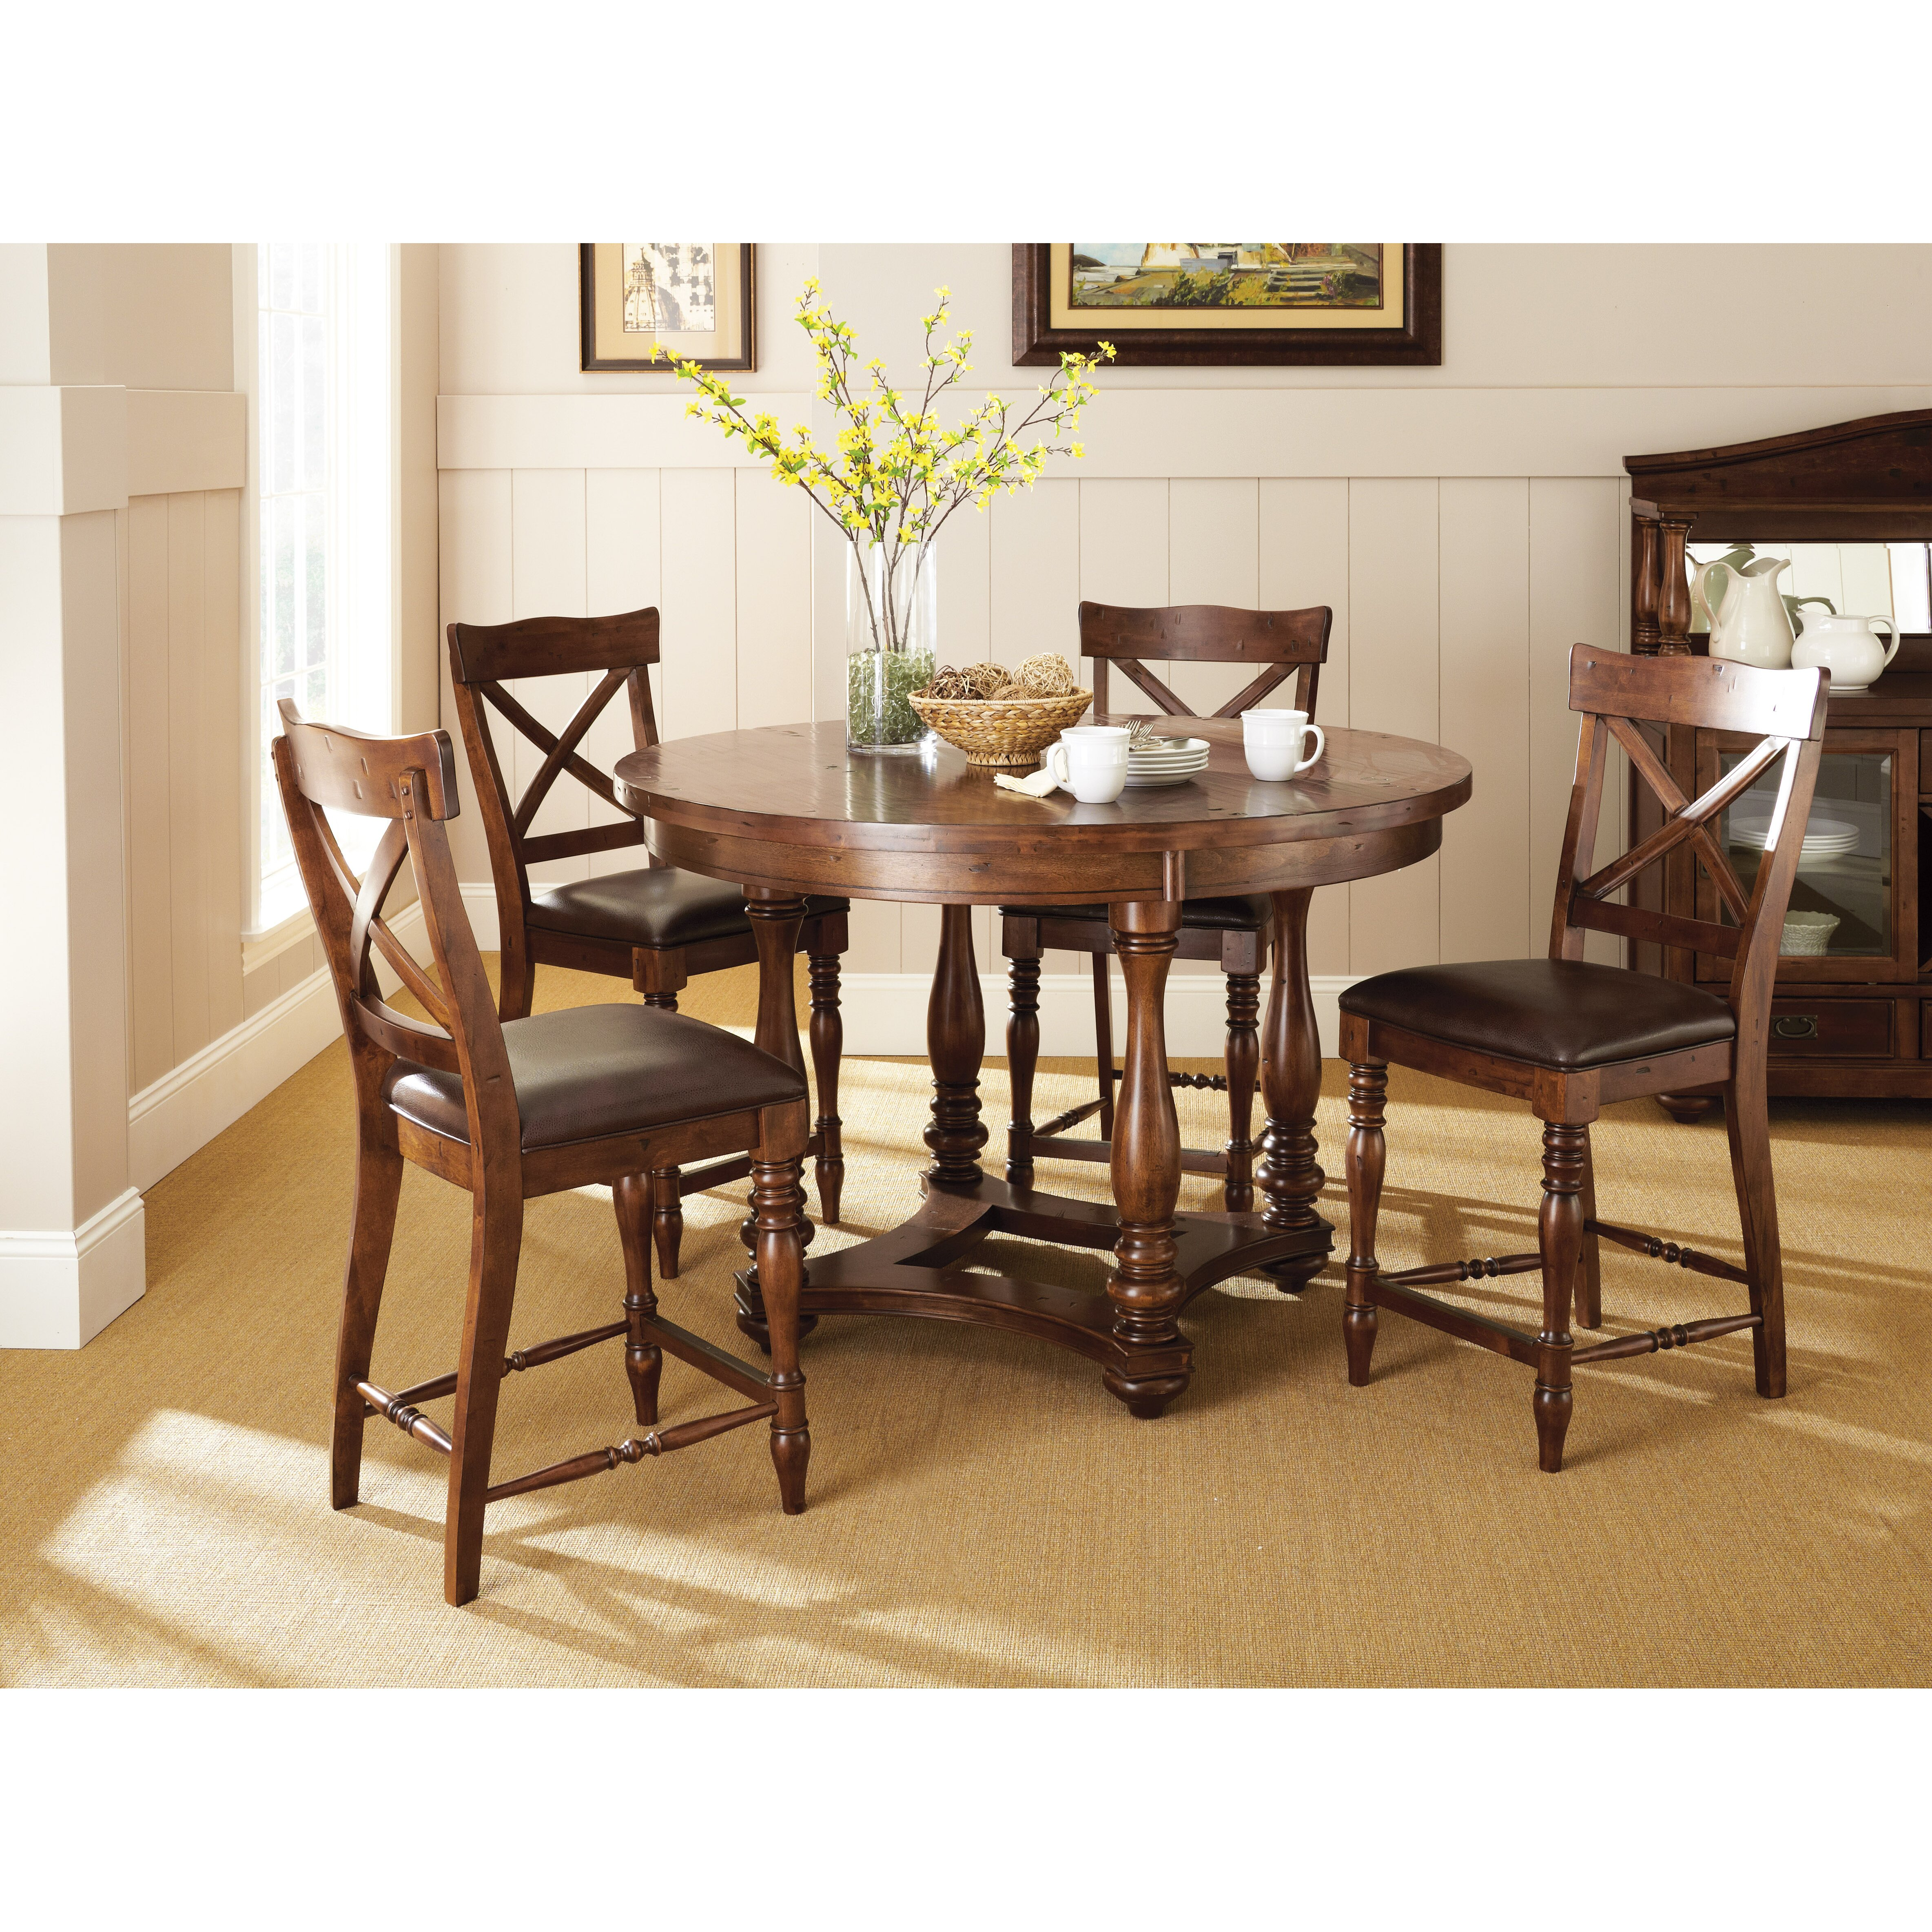 Darby Home Co Weldon 5 Piece Counter Height Dining Set Reviews